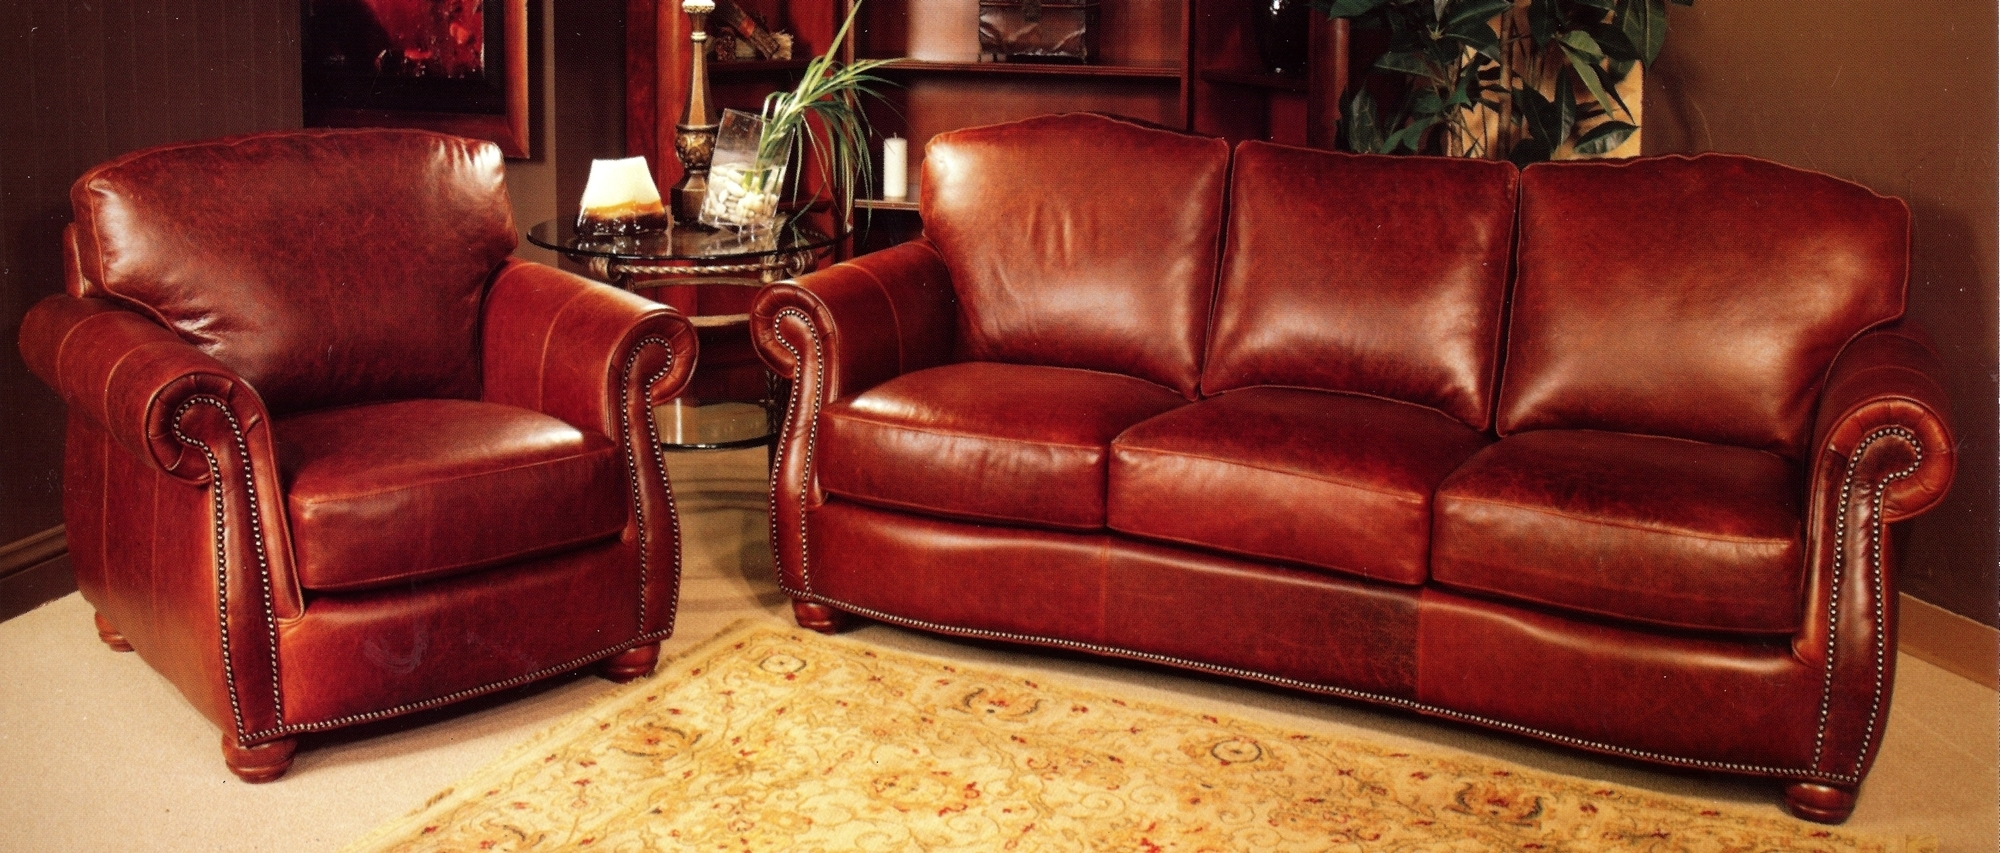 - View Photos Of Red Leather Sofas (Showing 16 Of 20 Photos)